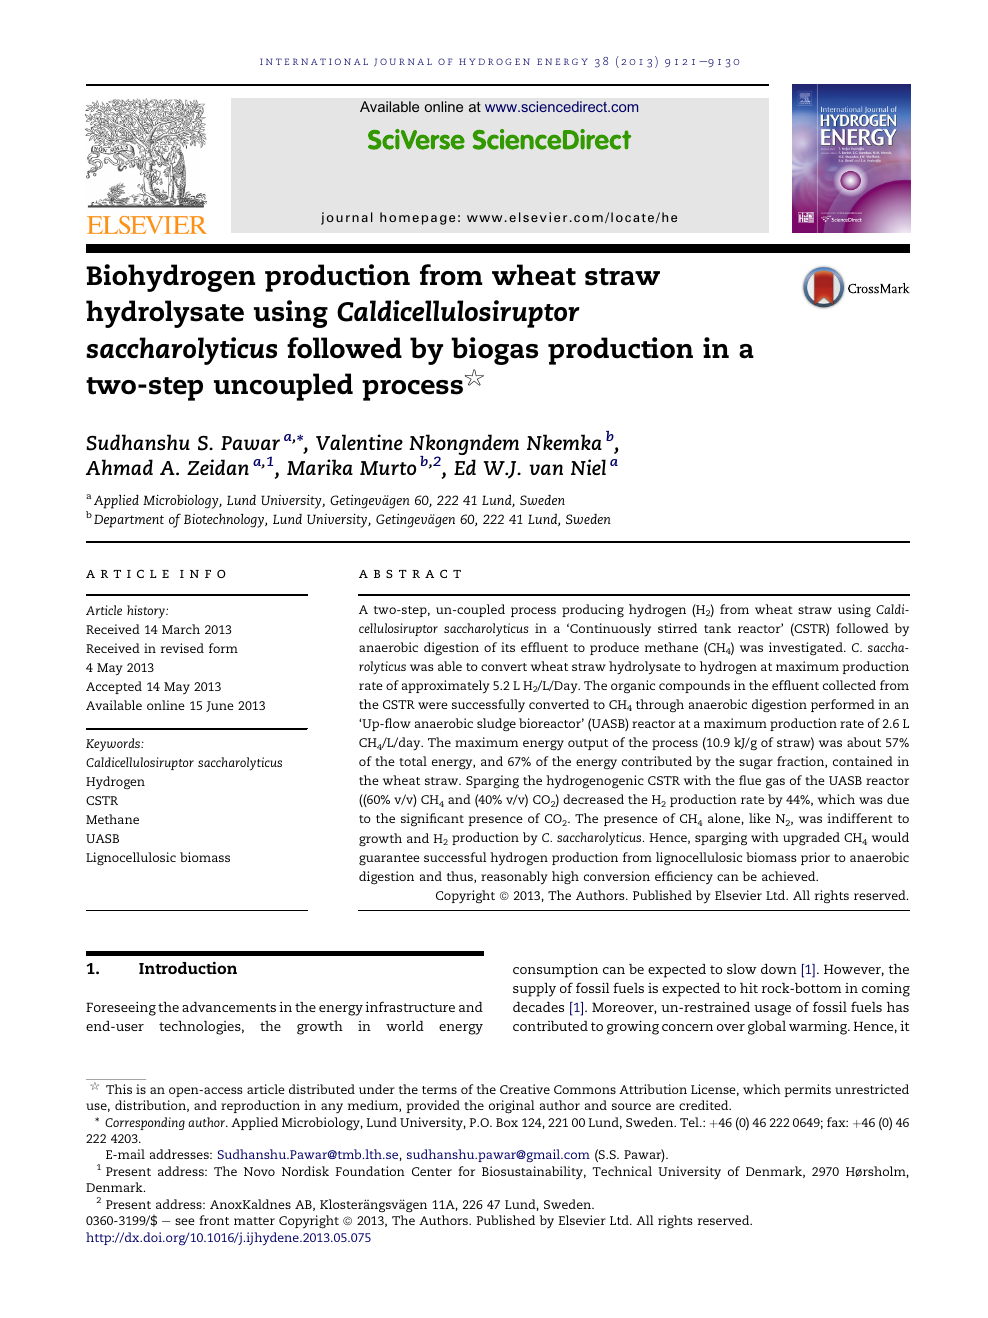 Biohydrogen production from wheat straw hydrolysate using